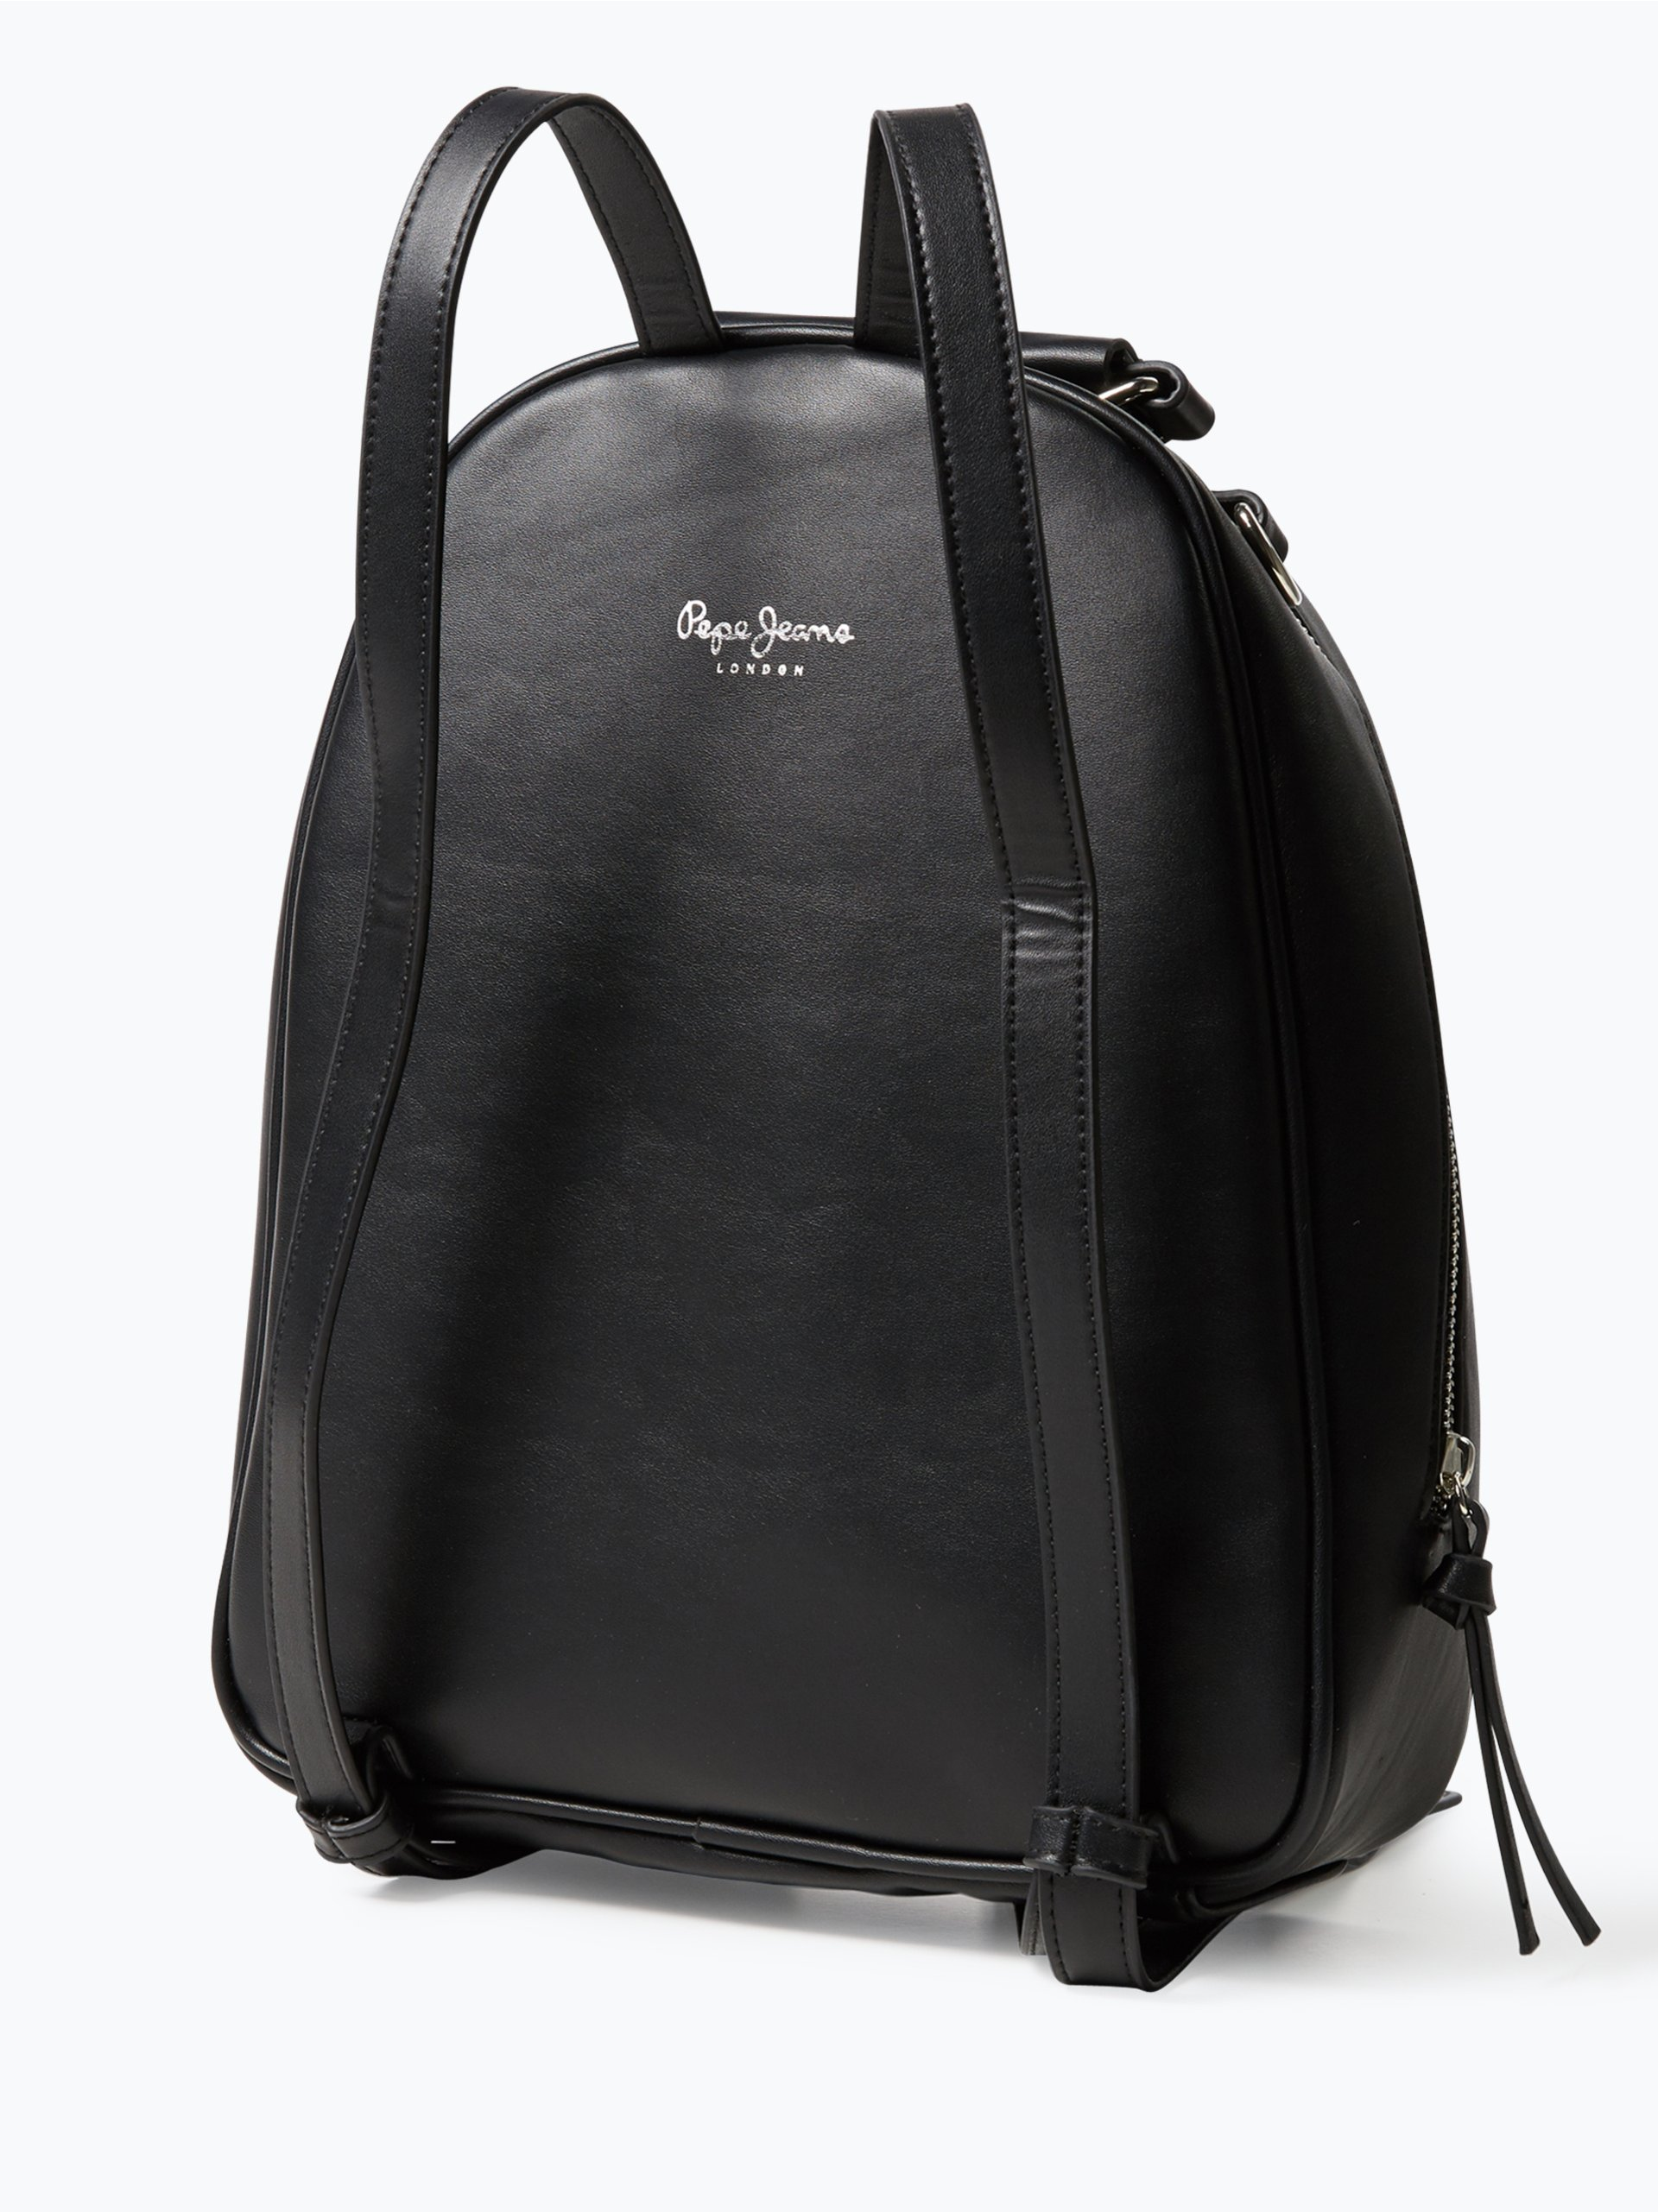 pepe jeans damen rucksack clara schwarz uni online kaufen peek und cloppenburg de. Black Bedroom Furniture Sets. Home Design Ideas